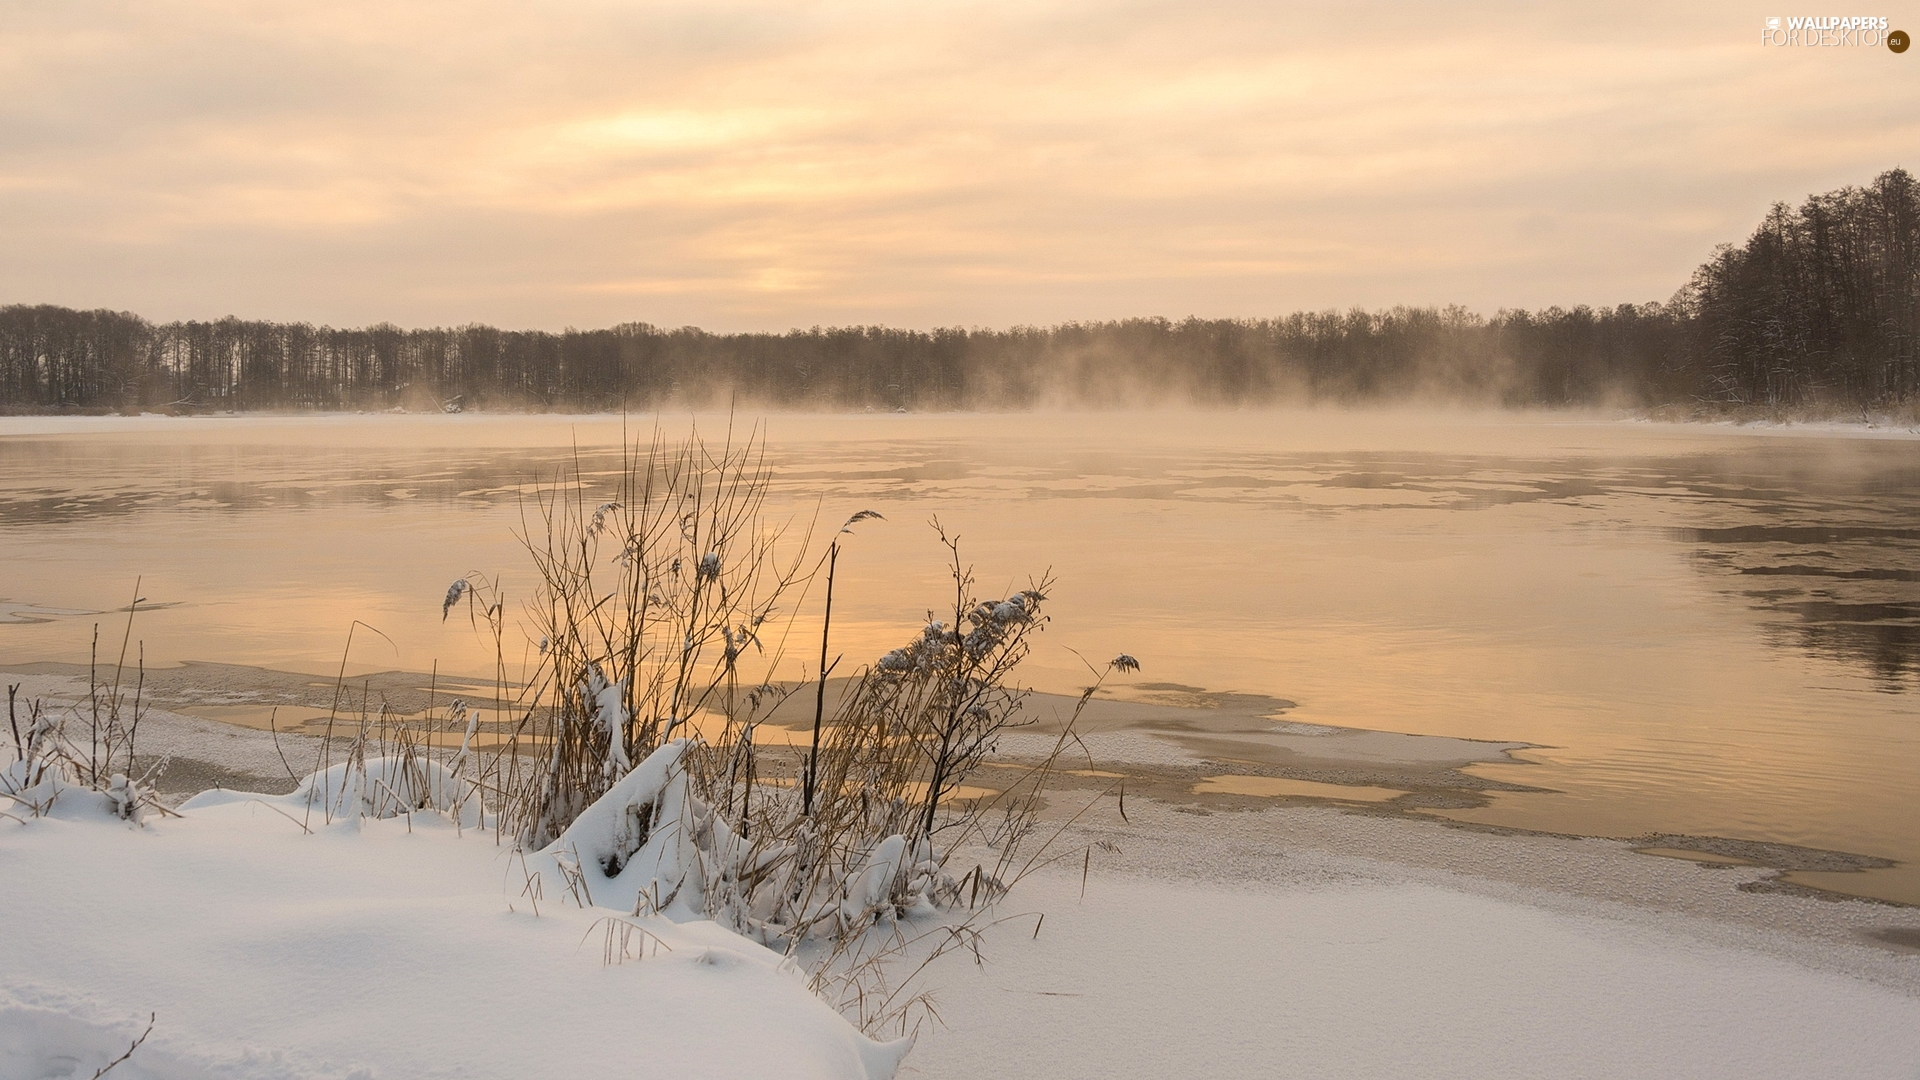 Plants, trees, Fog, viewes, forest, lake, winter